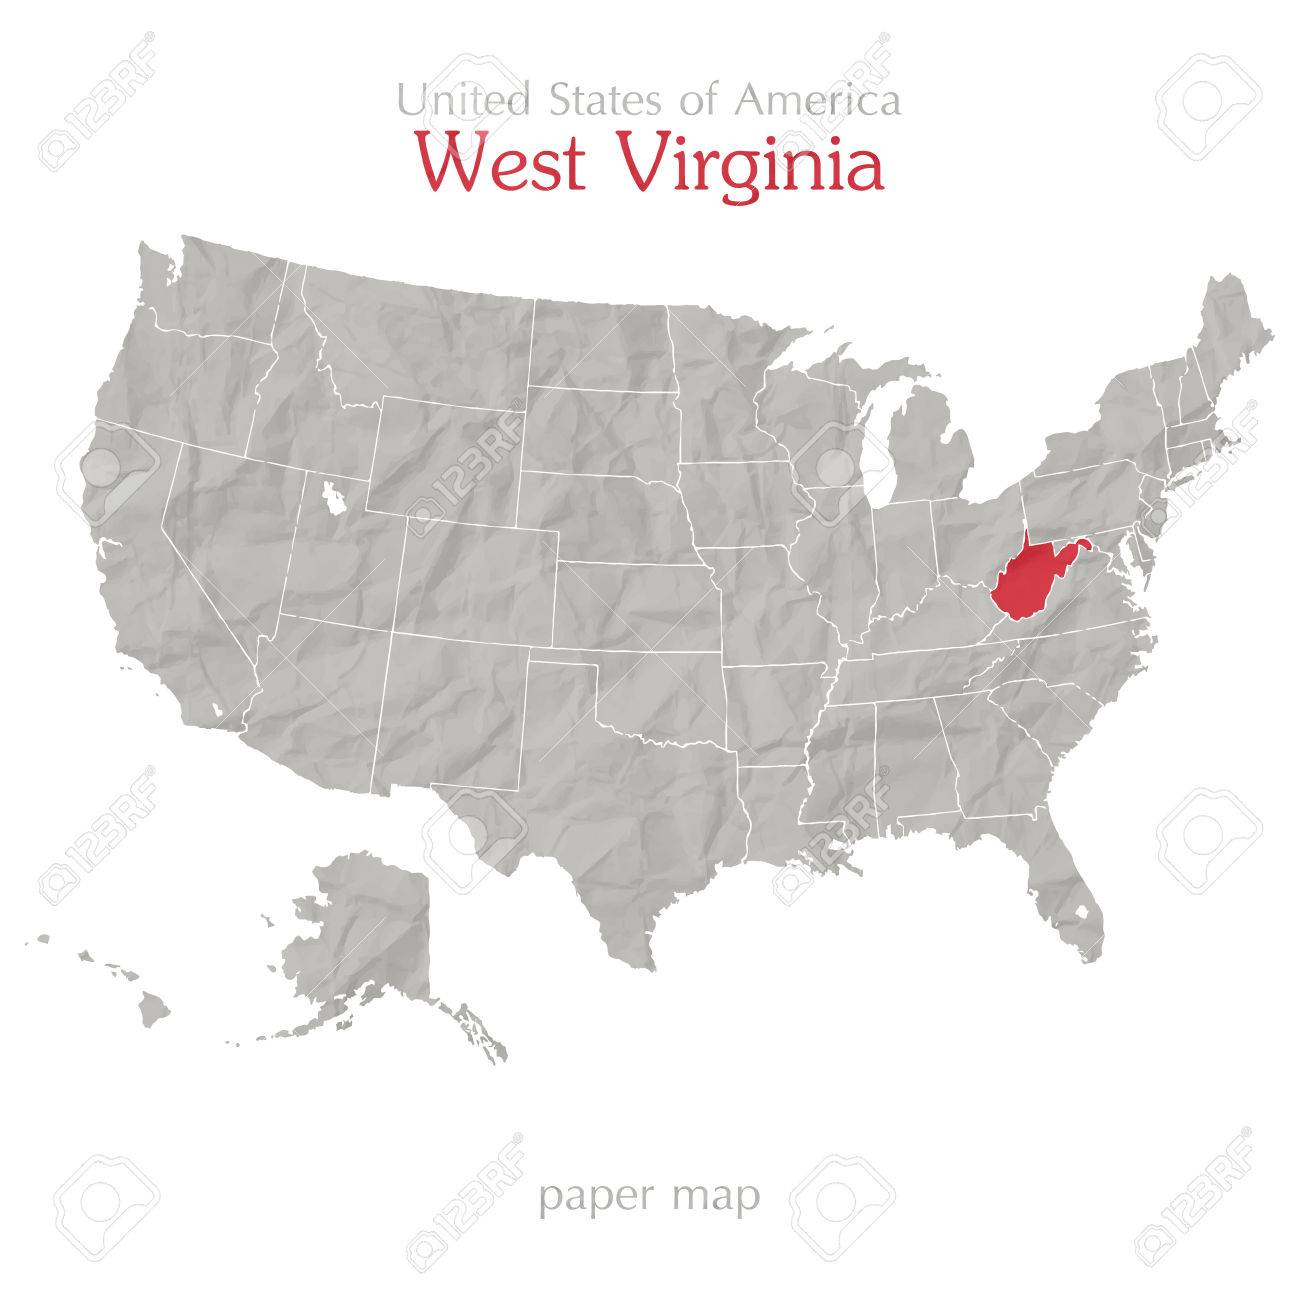 United State Of America Map.United States Of America Map And West Virginia State Territory